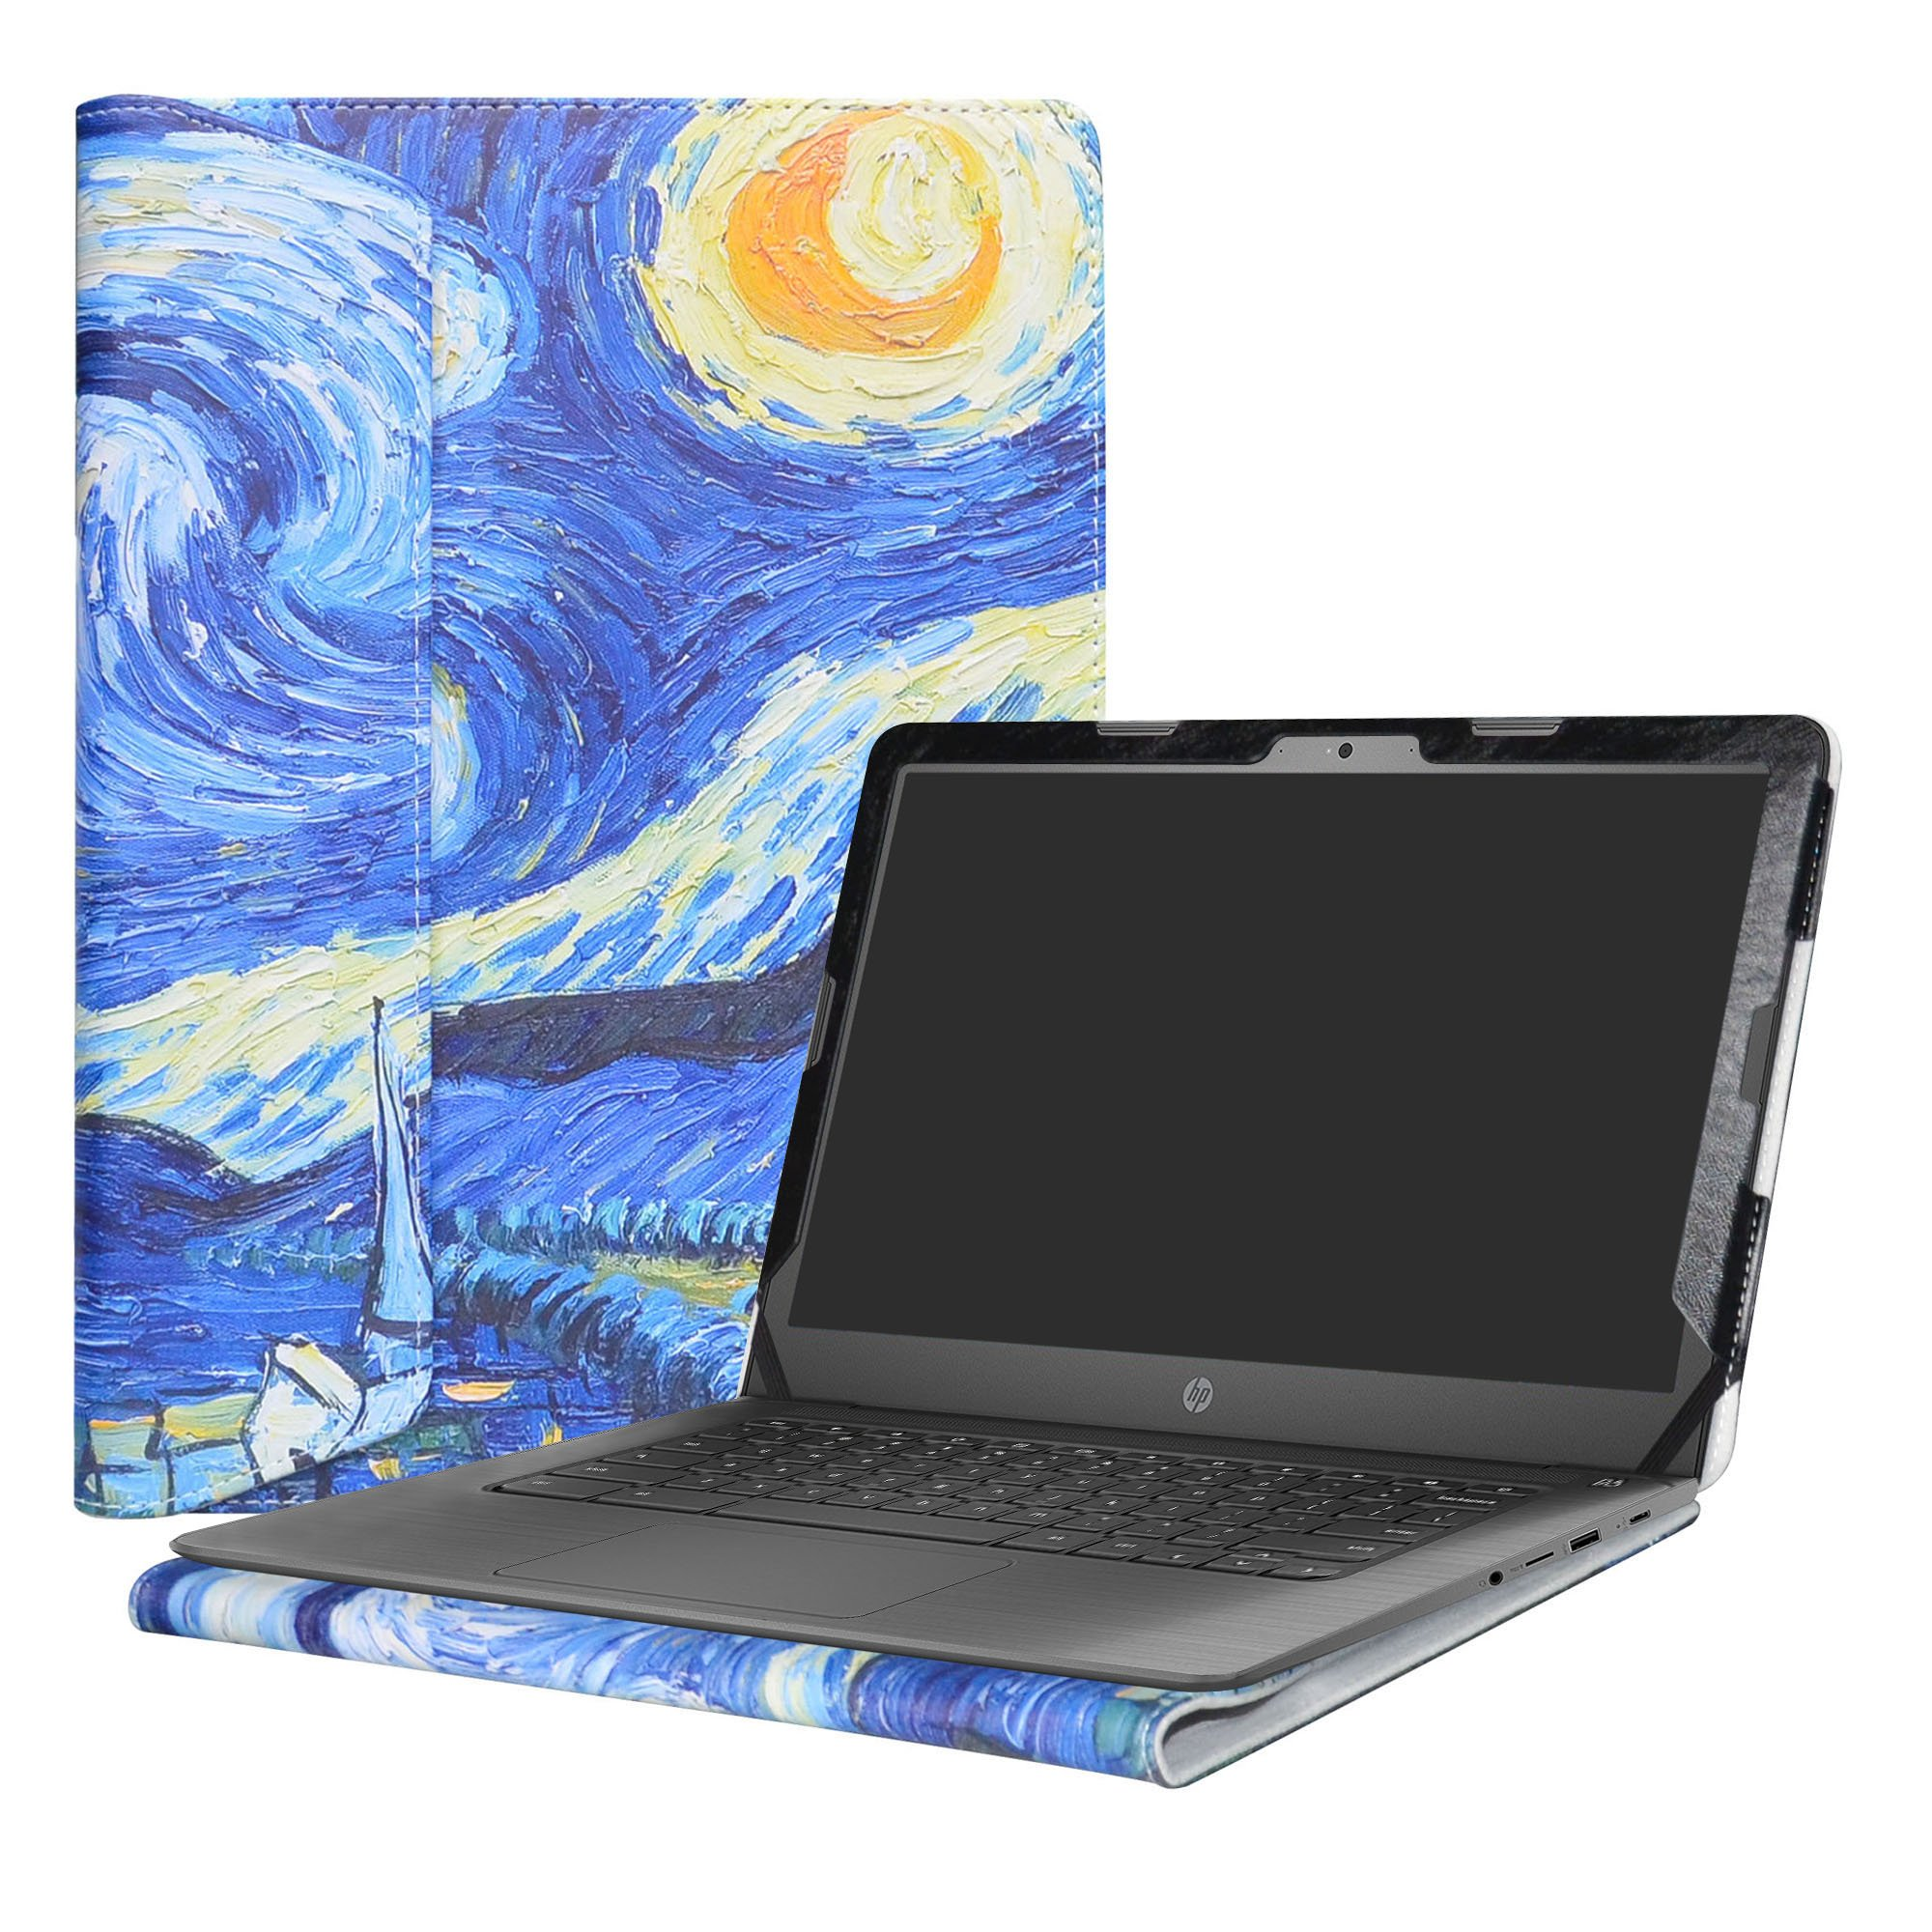 Alapmk Protective Case For 14'' HP Notebook 14-bsXXX (Such as 14-bs153od)/14-bwXXX (Such as 14-bw010nr)/HP 240 G6/HP 245 G6/HP 246 G6 Laptop(Not fit 14-anXXX 14-amXXX 14-cmXXX Series),Starry Night